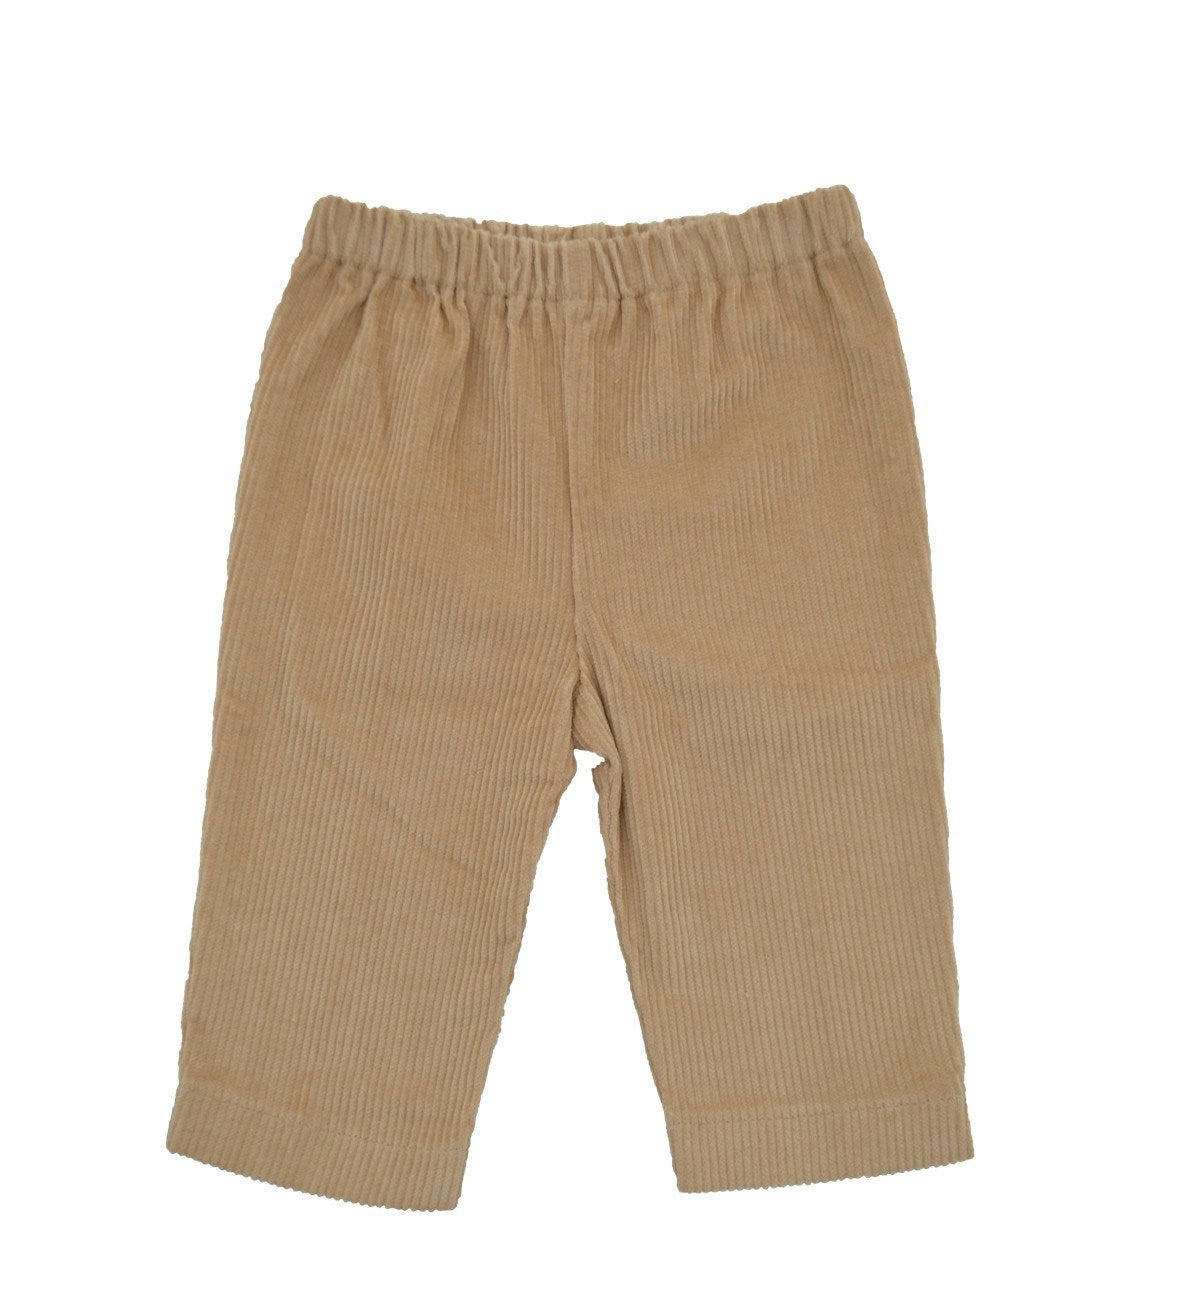 Spanish baby clothes | baby Trousers | Camel trousers |babymaC